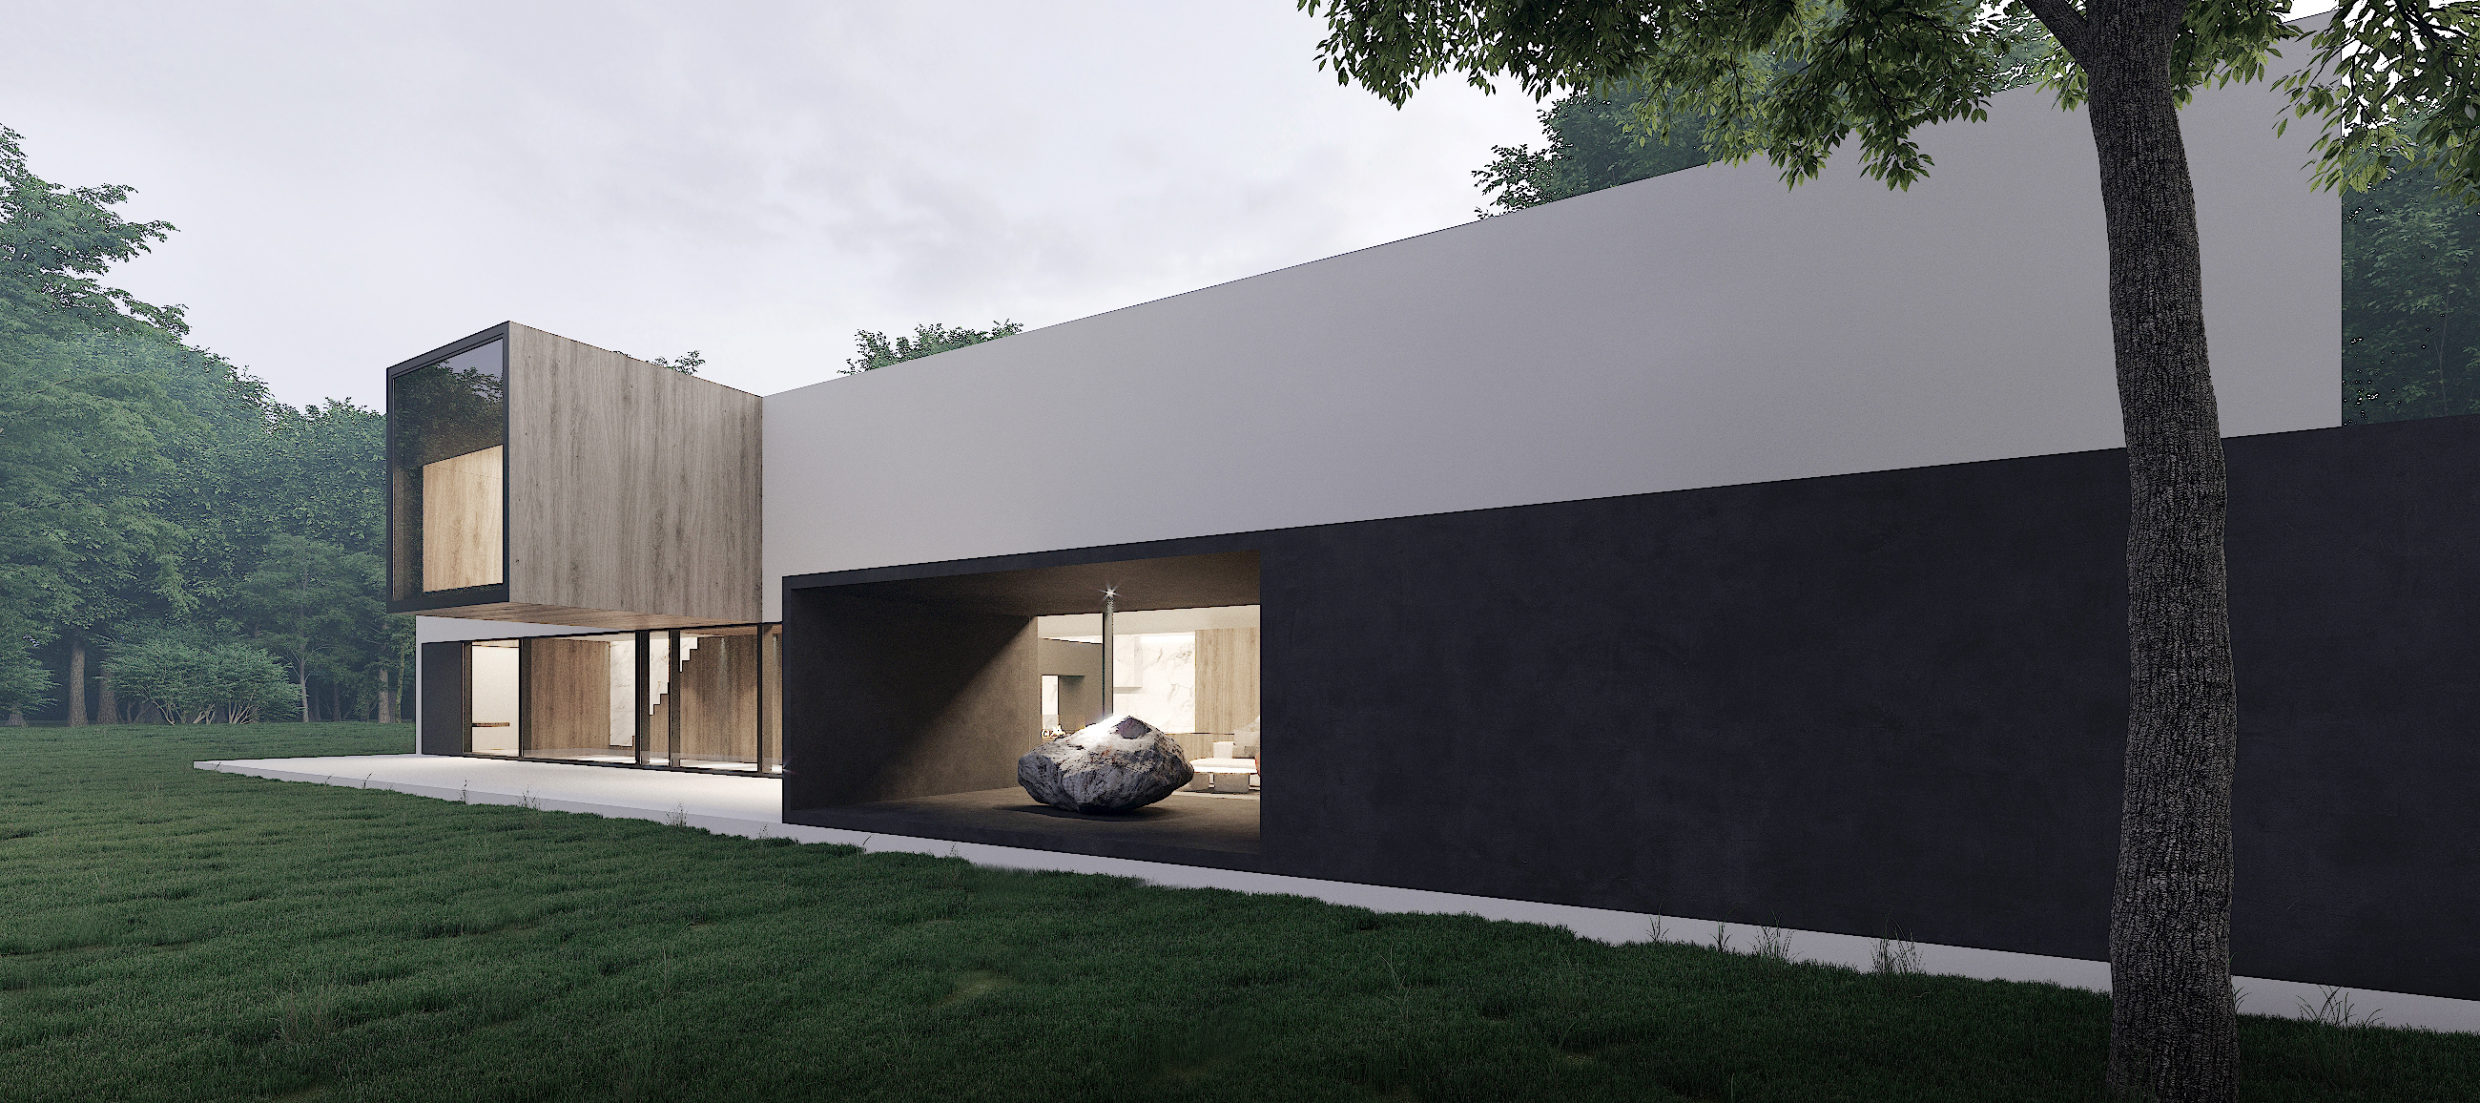 CONCEPT HOUSE lll 6